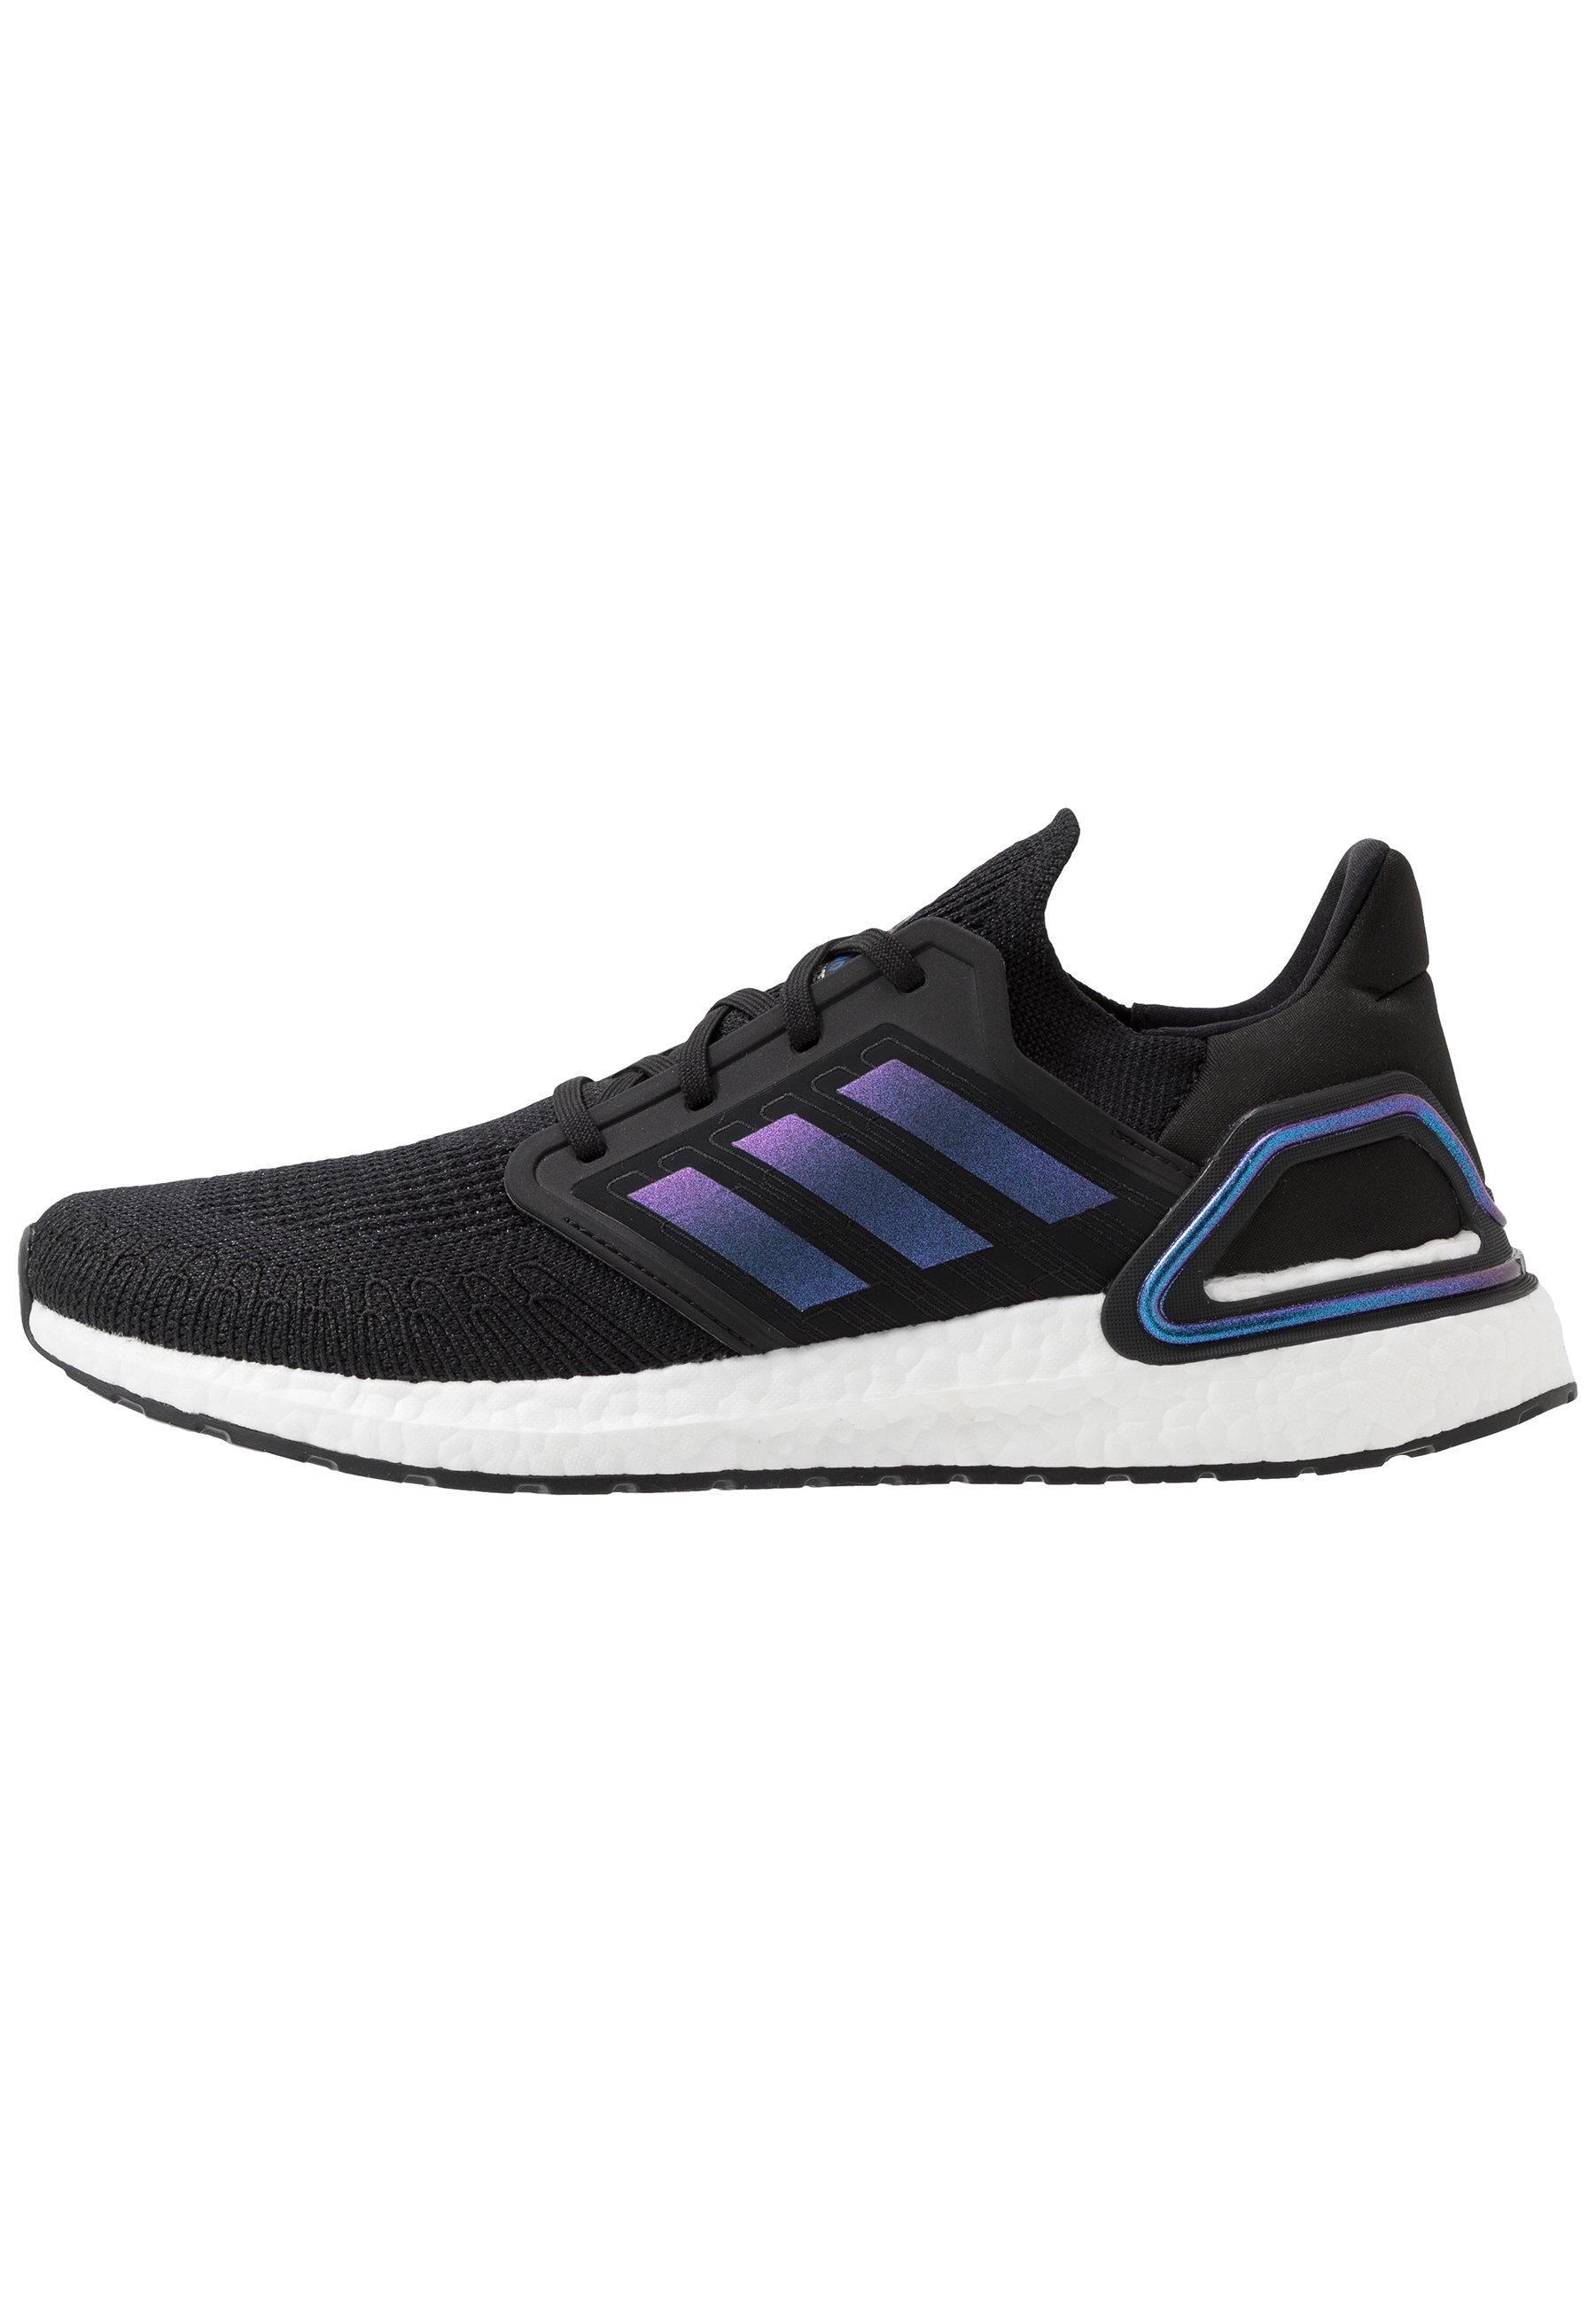 adidas Performance ULTRABOOST 20 PRIMEKNIT RUNNING SHOES ...